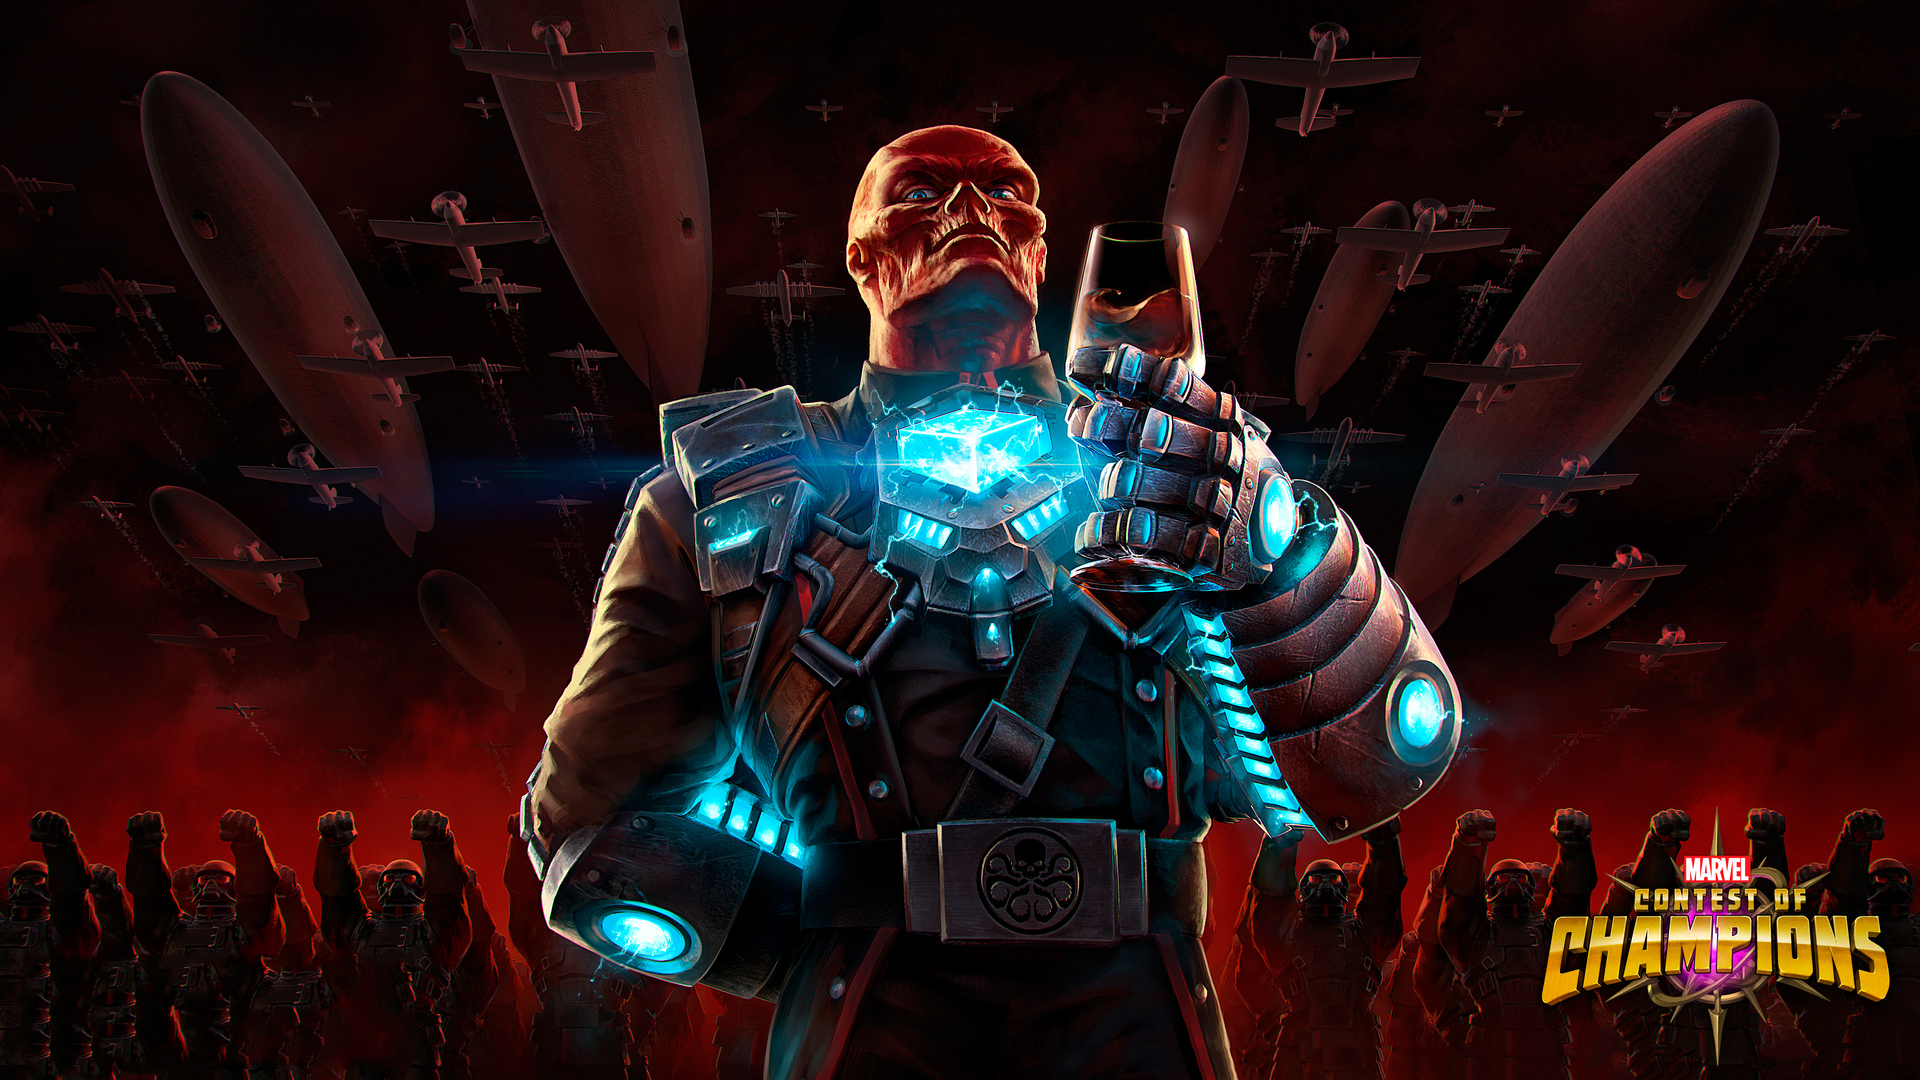 Red Skull Contest Of Champions 4k